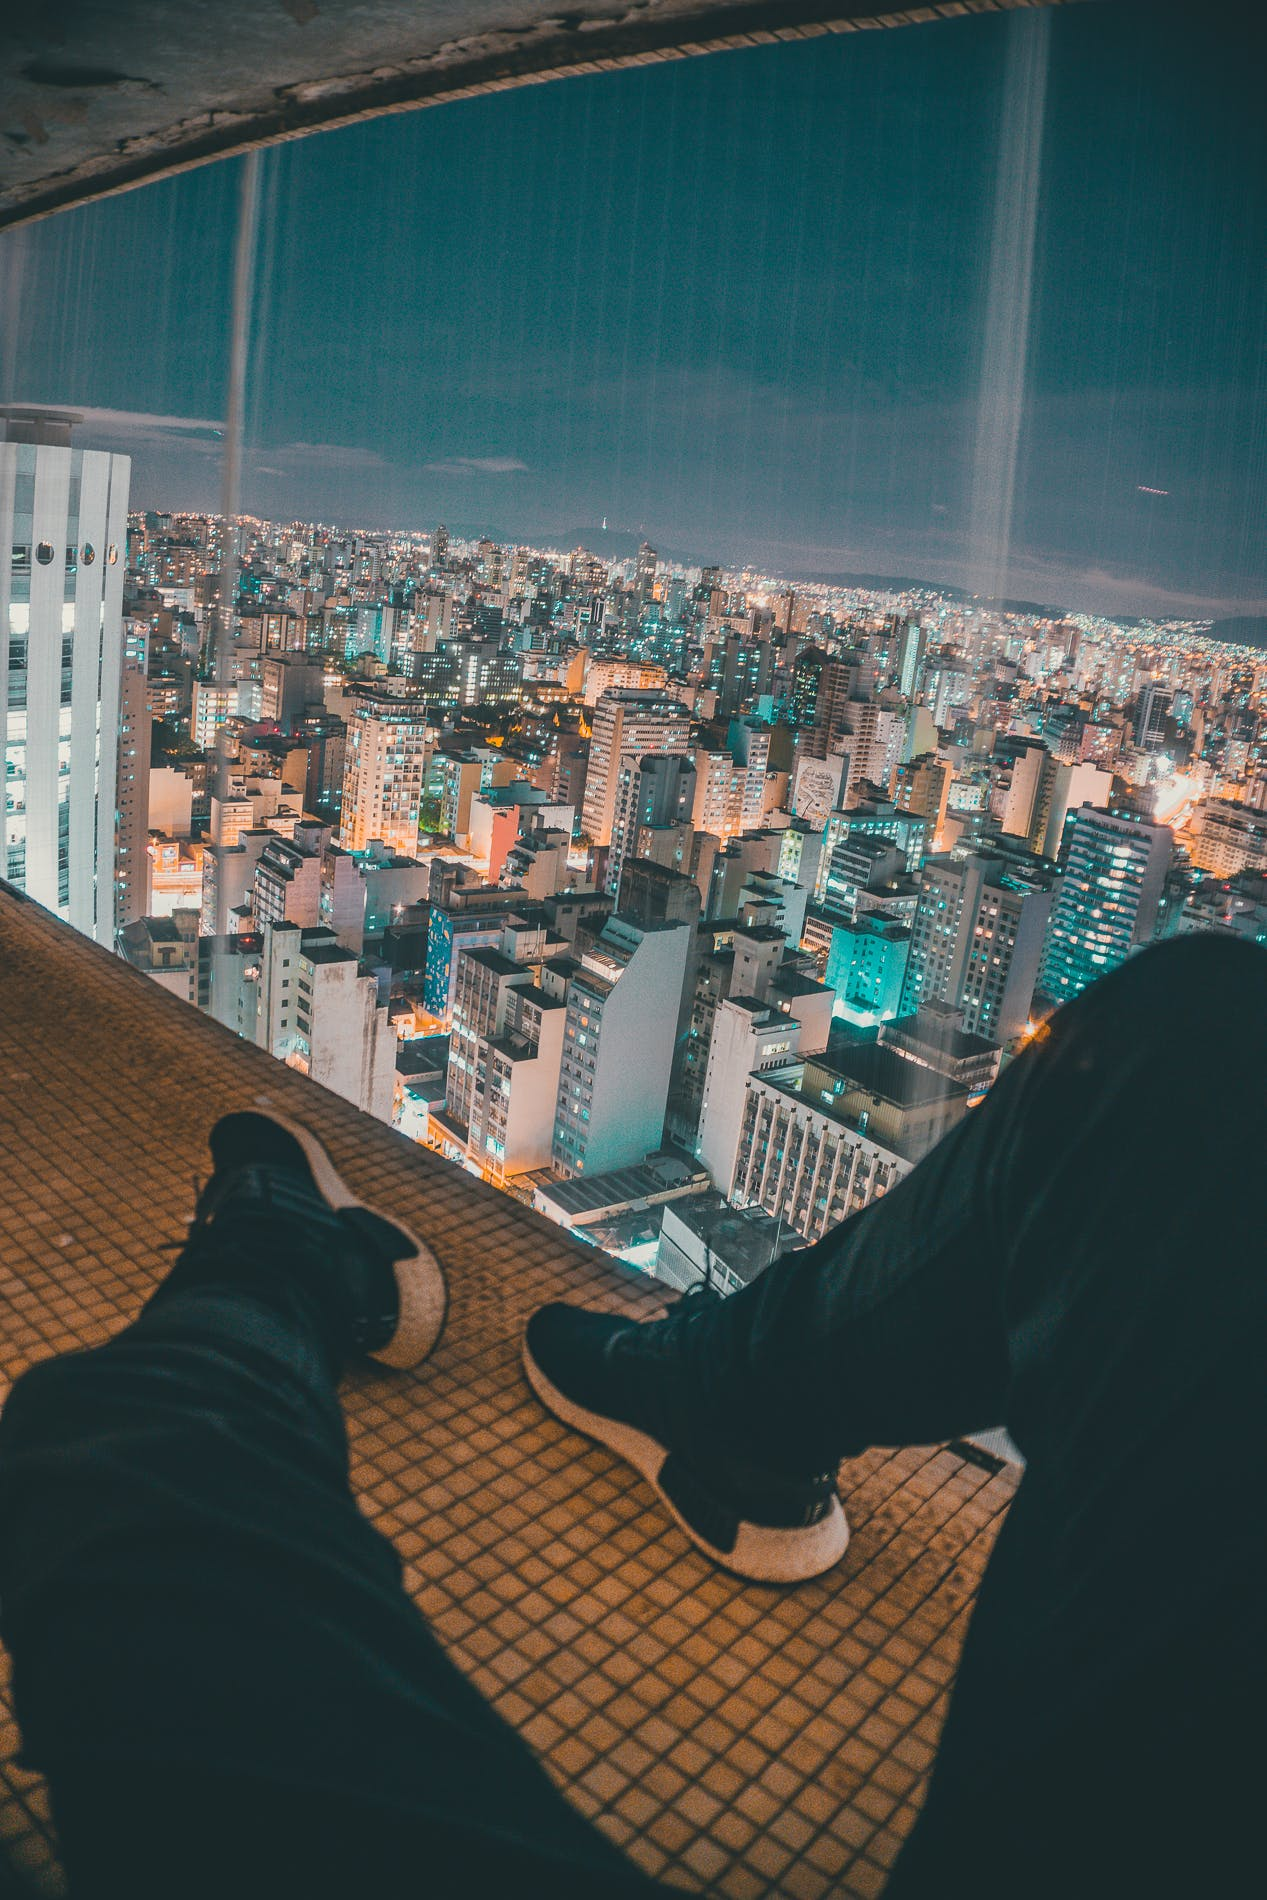 Man Sitting on Top of Building Near Glass Window Viewing Cityscape